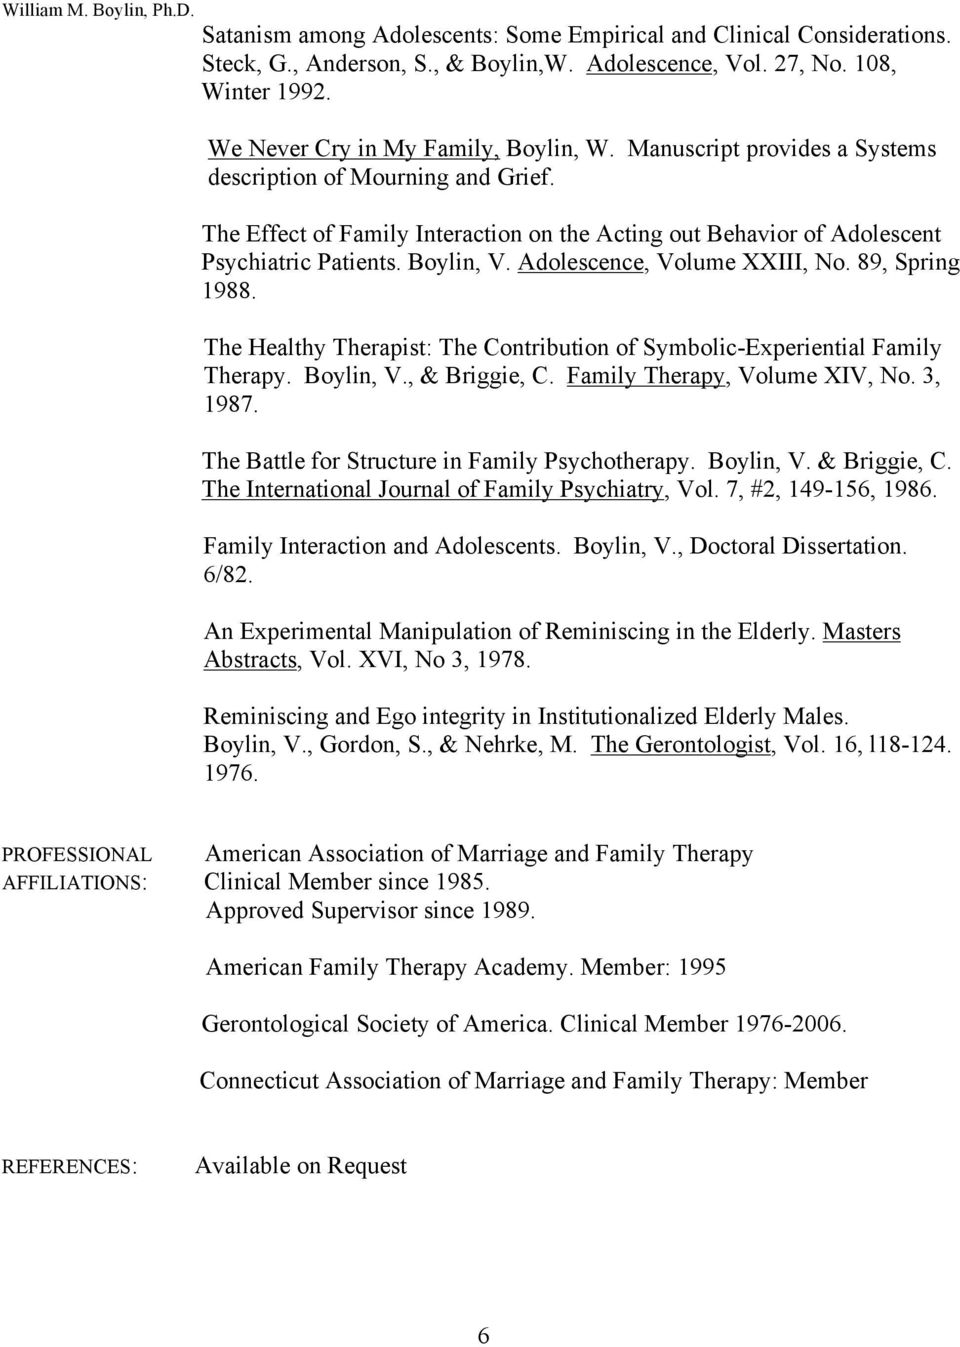 Adolescence, Volume XXIII, No. 89, Spring 1988. The Healthy Therapist: The Contribution of Symbolic-Experiential Family Therapy. Boylin, V., & Briggie, C. Family Therapy, Volume XIV, No. 3, 1987.